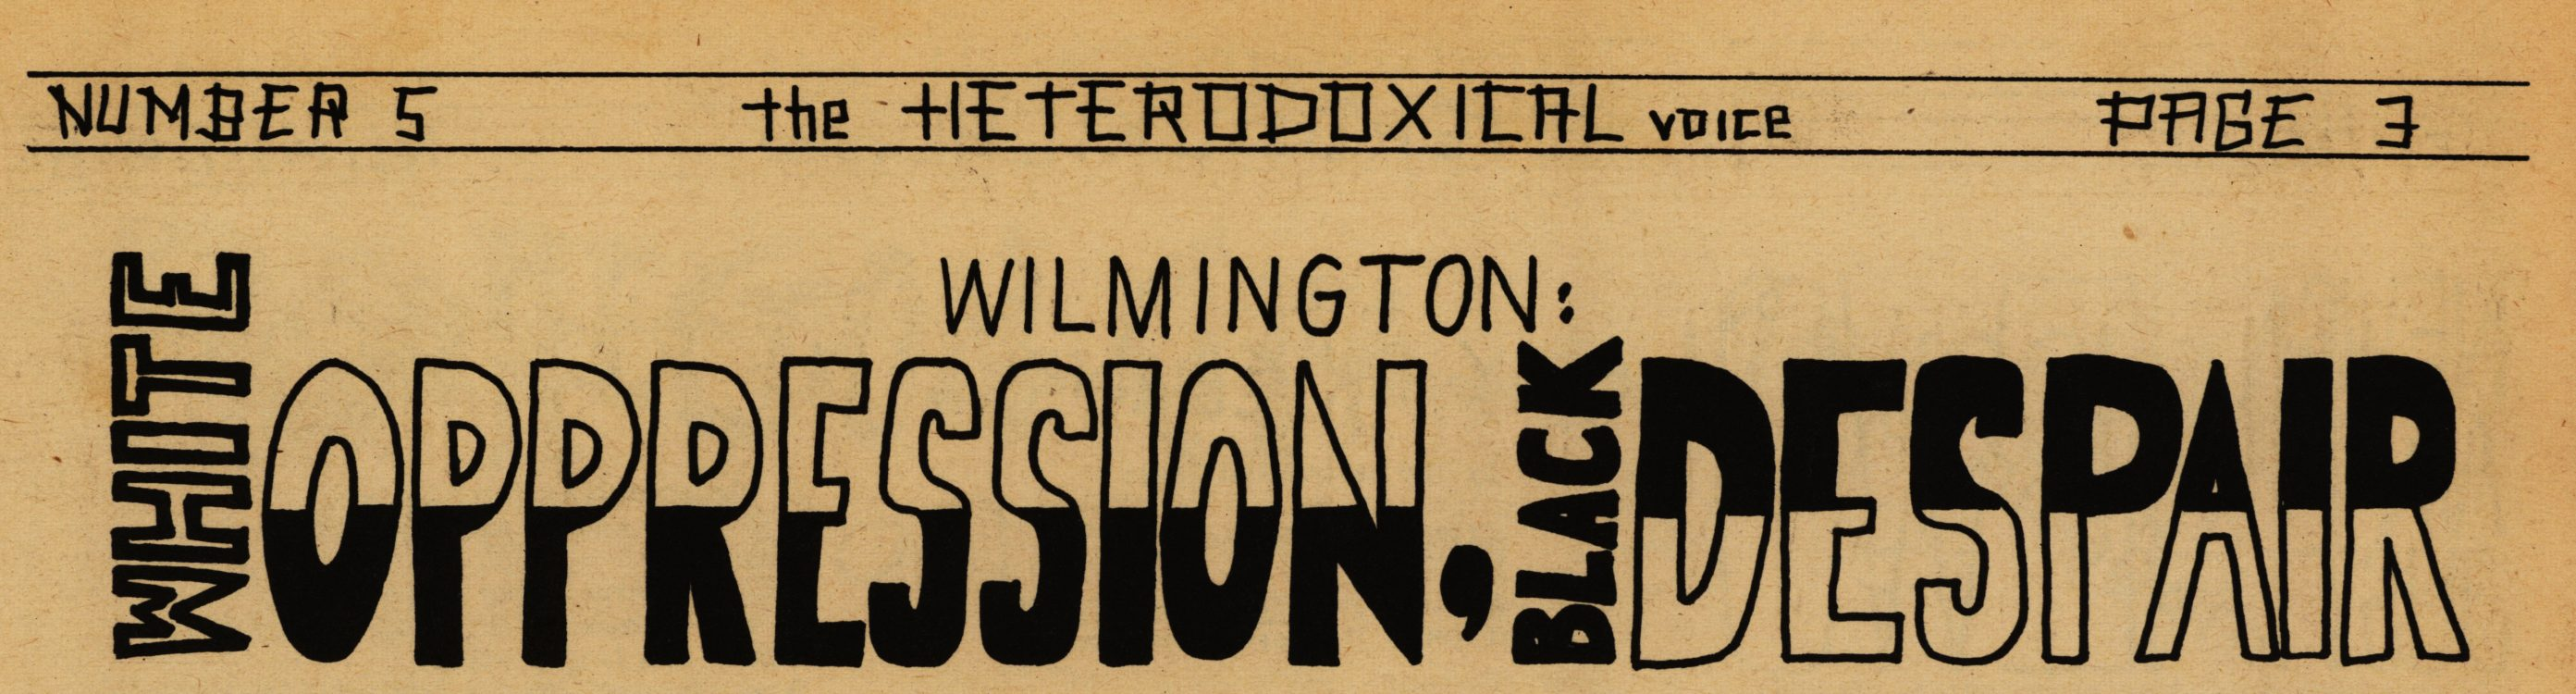 """Wilmington: White Oppression, Black Despair."" The Heterodoxical Voice, 1968 July-August. Volume 1, number 5, page 3"